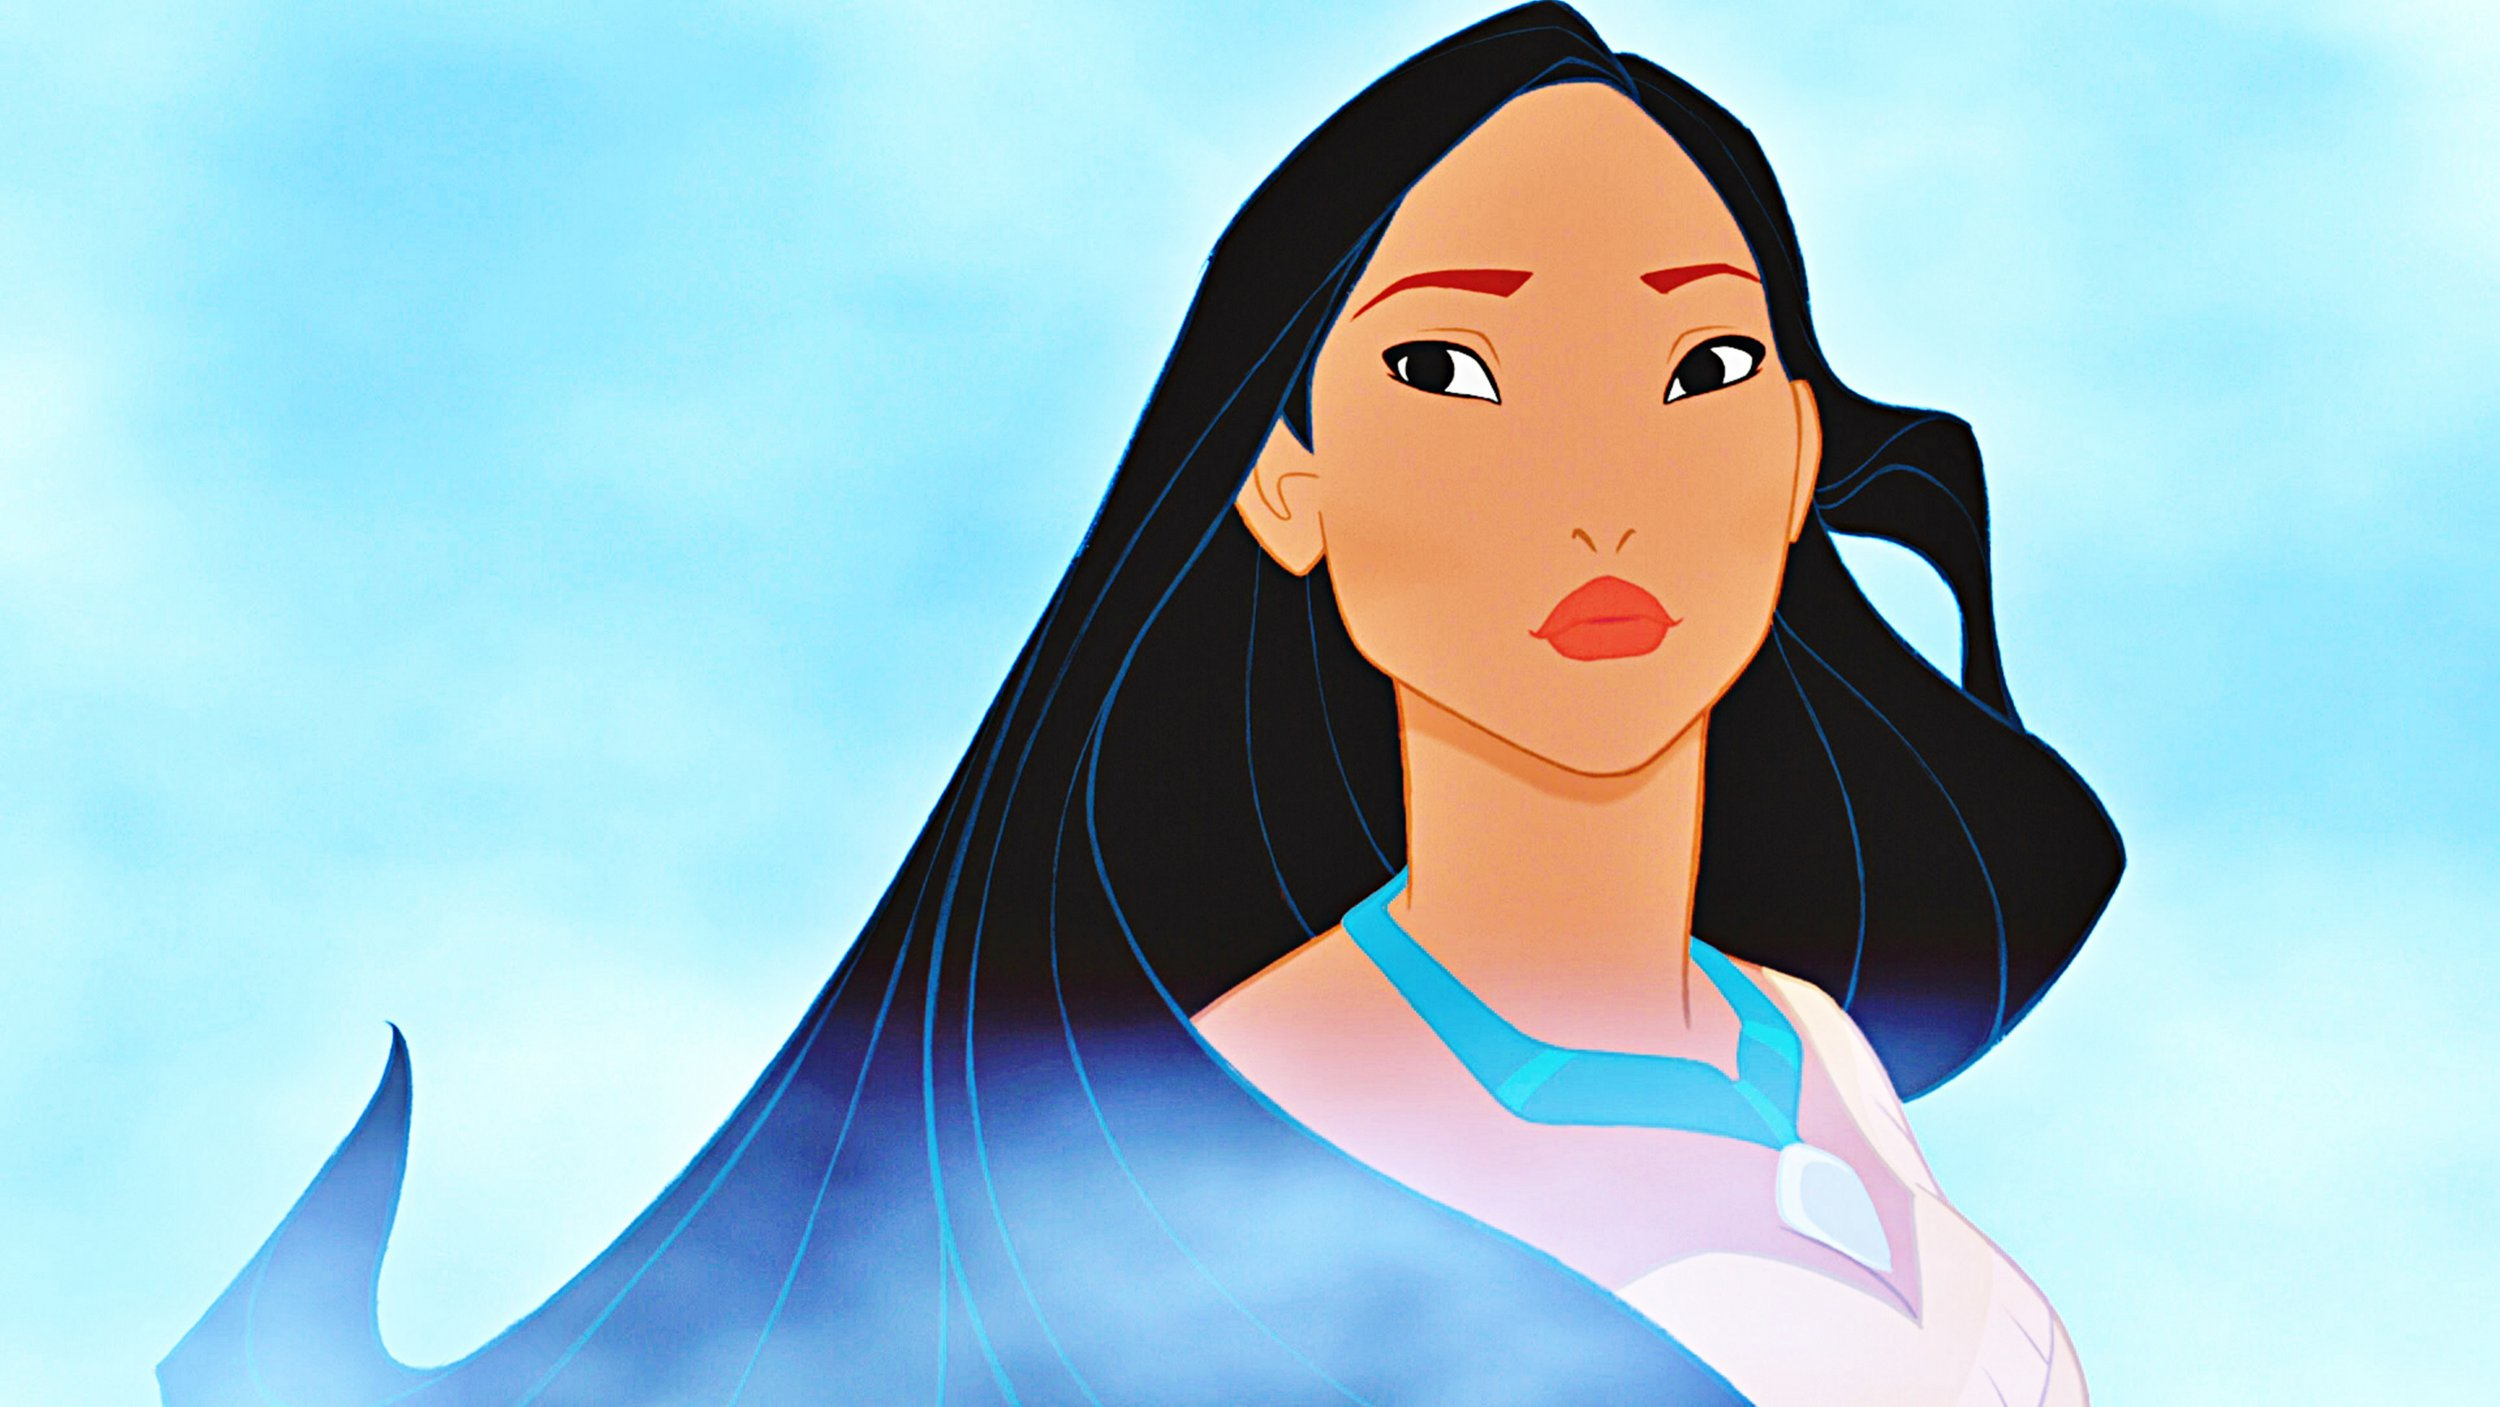 Pocahontas remake would be too 'offensive', claims Disney composer